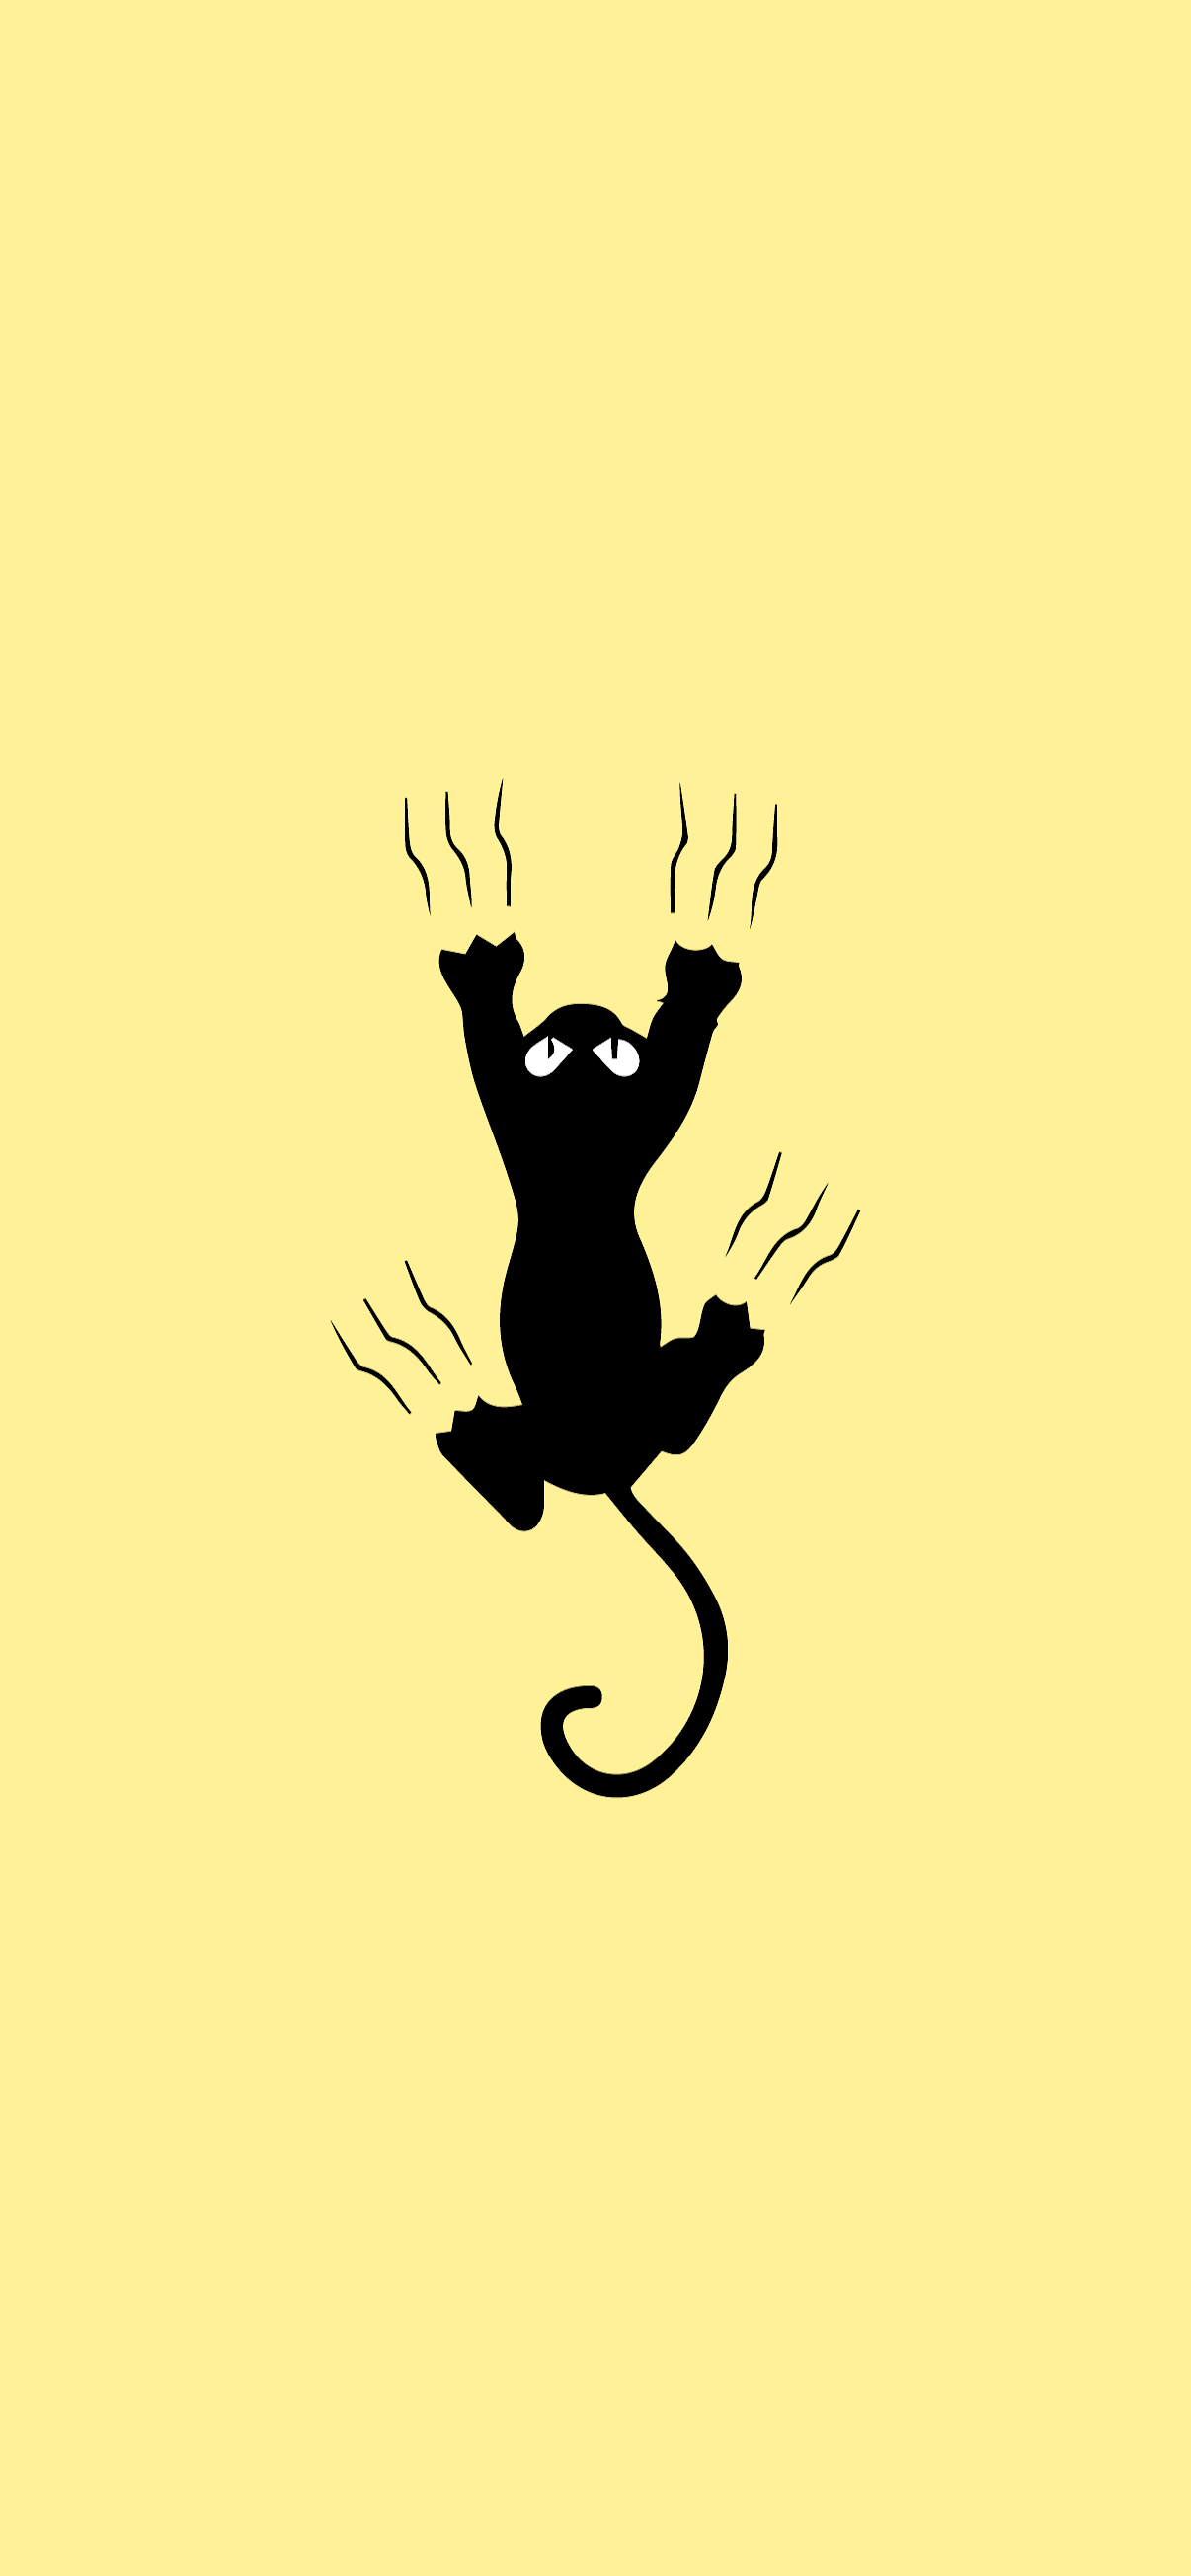 cat scratching minimalist wallpaper hd for phone yellow